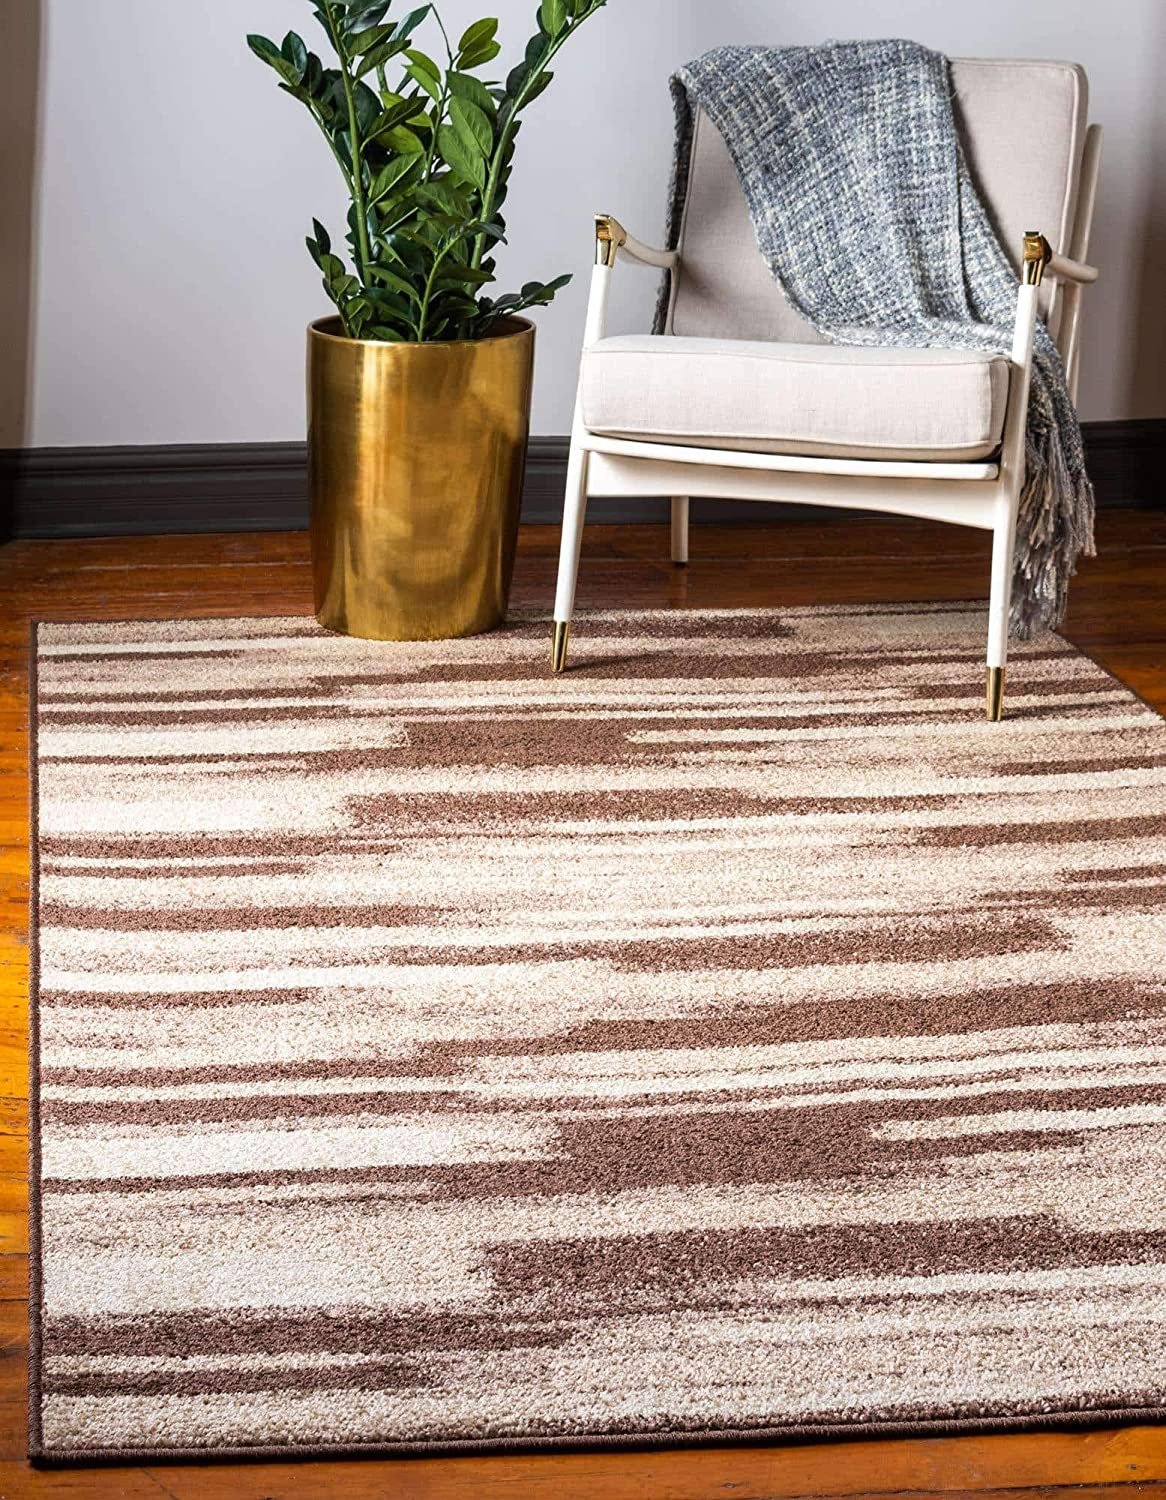 Unique Loom Autumn Collection Gradient Casual Warm Toned Brown Area Rug 2 0 X 3 0 Furniture Decor